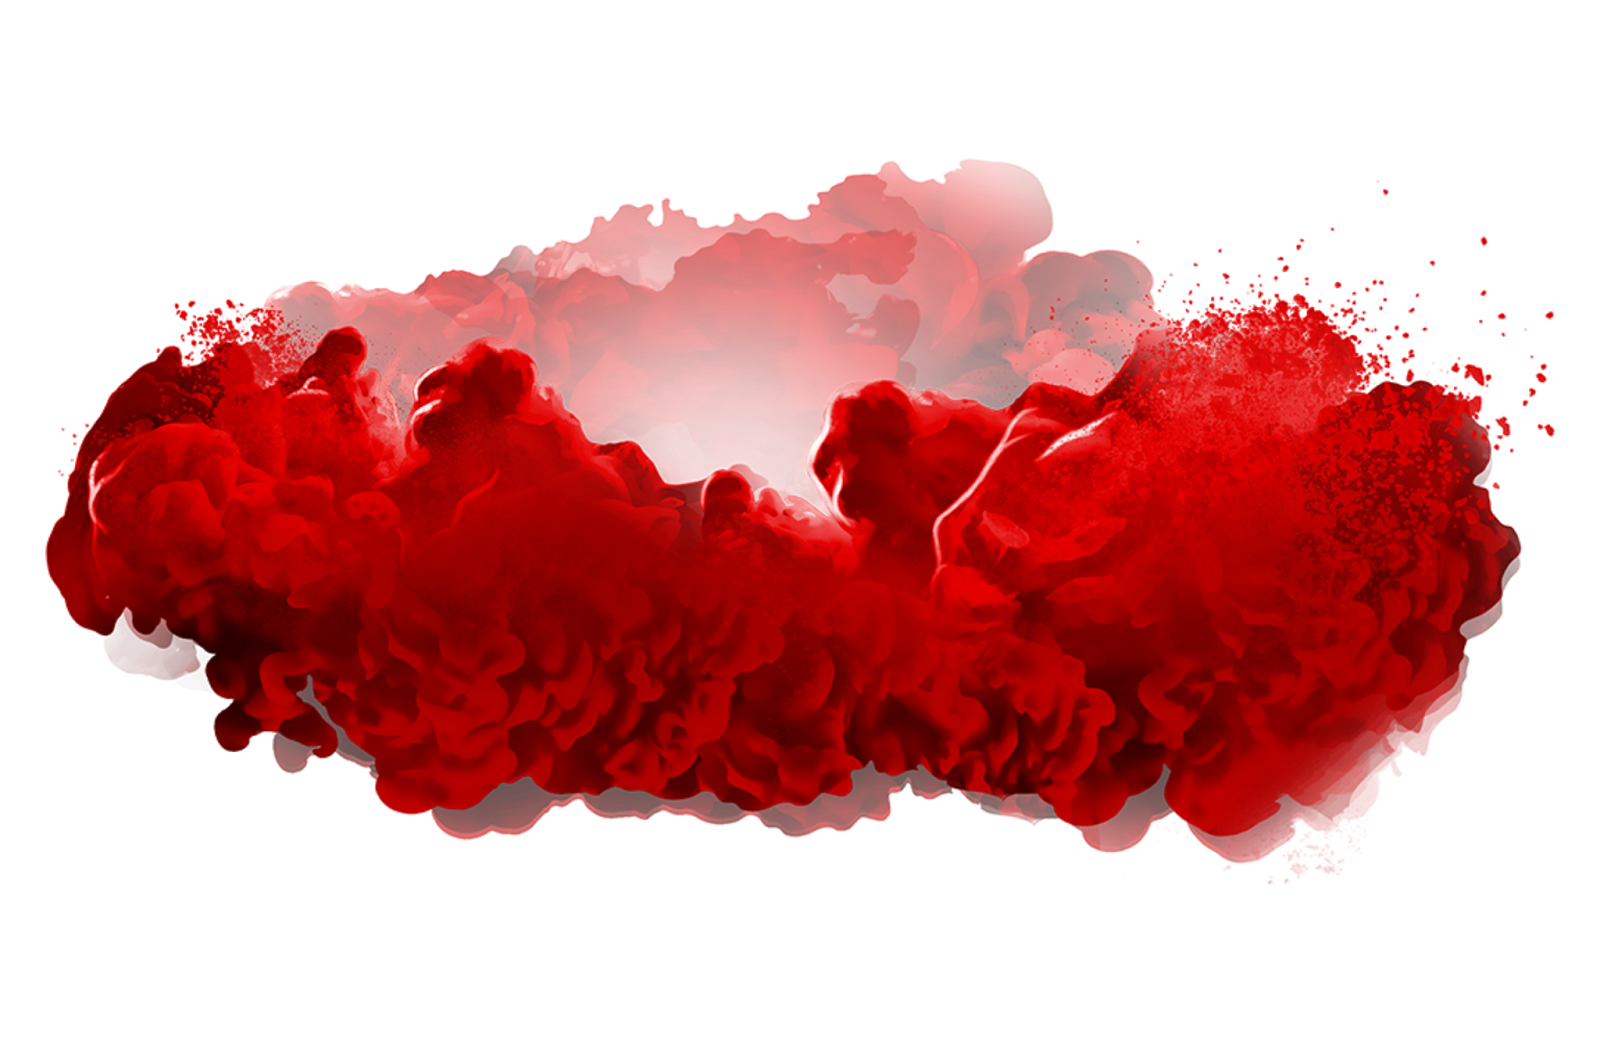 Blood background image arts. Red smoke png png free library